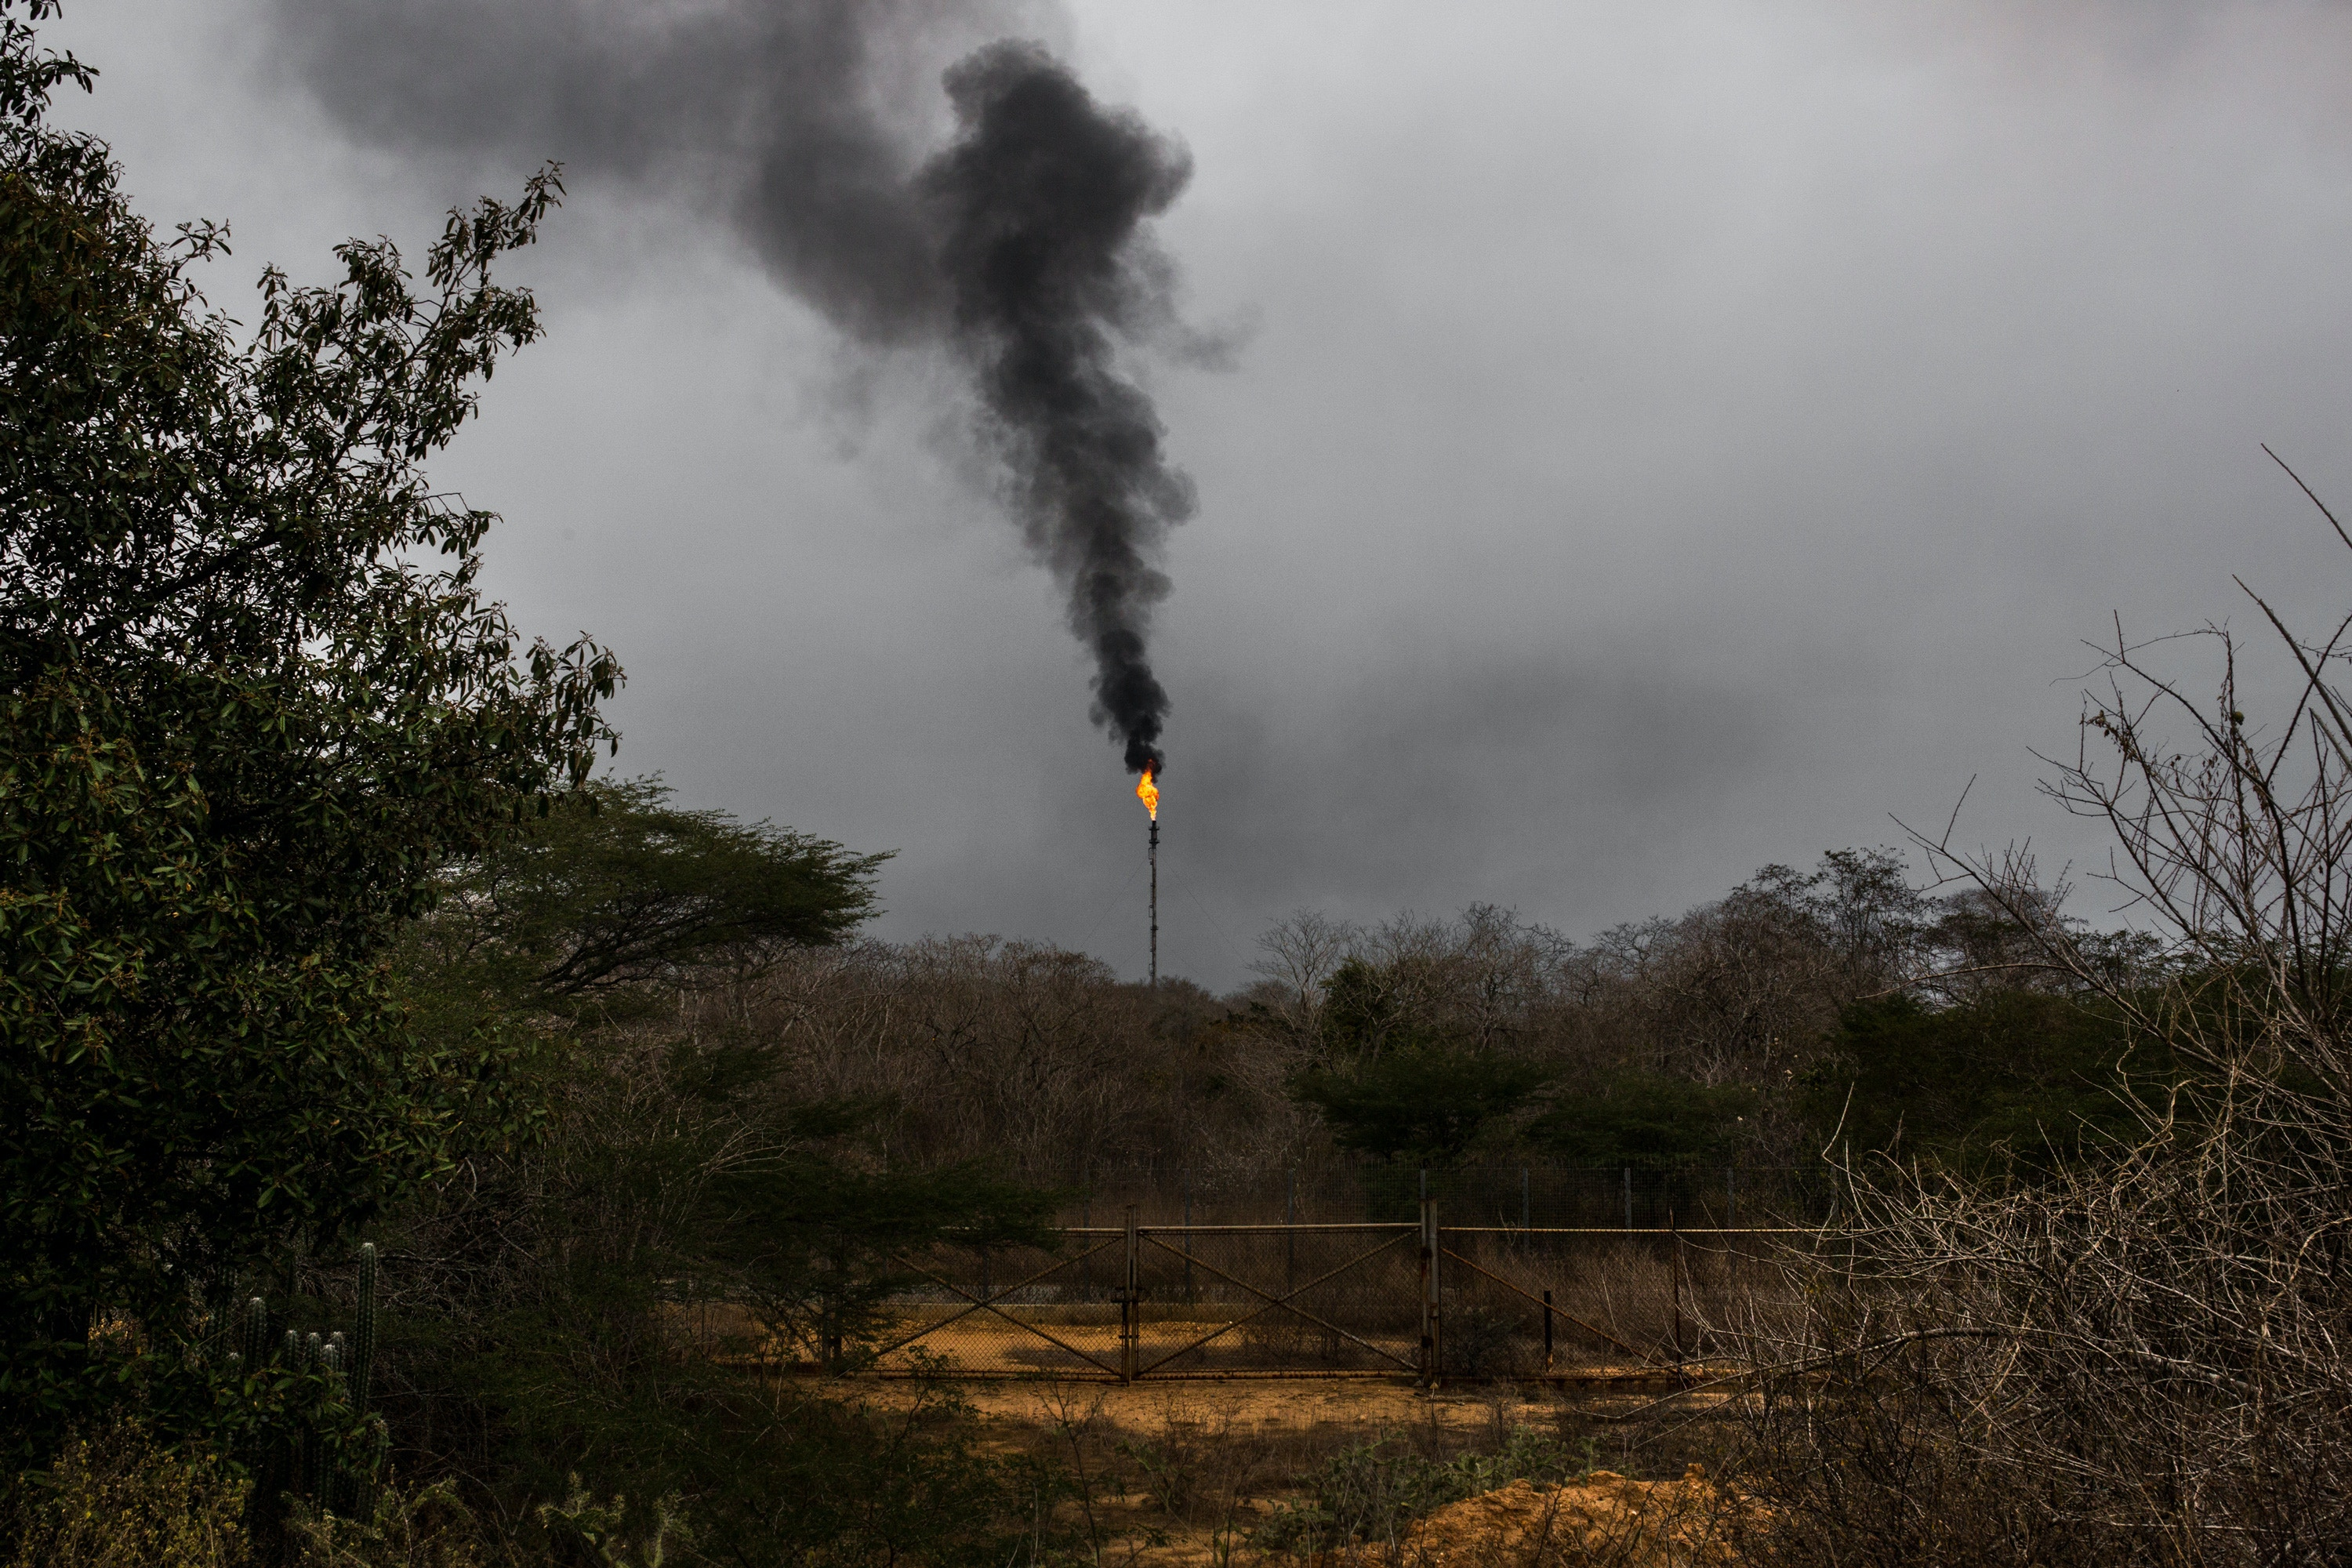 A gas flare is seen at the Petroleos de Venezuela SA (PDVSA) Jose Antonio Anzoategui industrial complex (CIJAA) in Barcelona, Anzoategui state, Venezuela, on Thursday, Feb. 8, 2018. Hunger is hastening the ruin of Venezuelan's oil industry as workers grow too weak and hungry for heavy labor. Absenteeism and mass resignations mean few are left to produce the oil that keeps the tattered economy functioning. Photographer: Wil Riera/Bloomberg via Getty Images